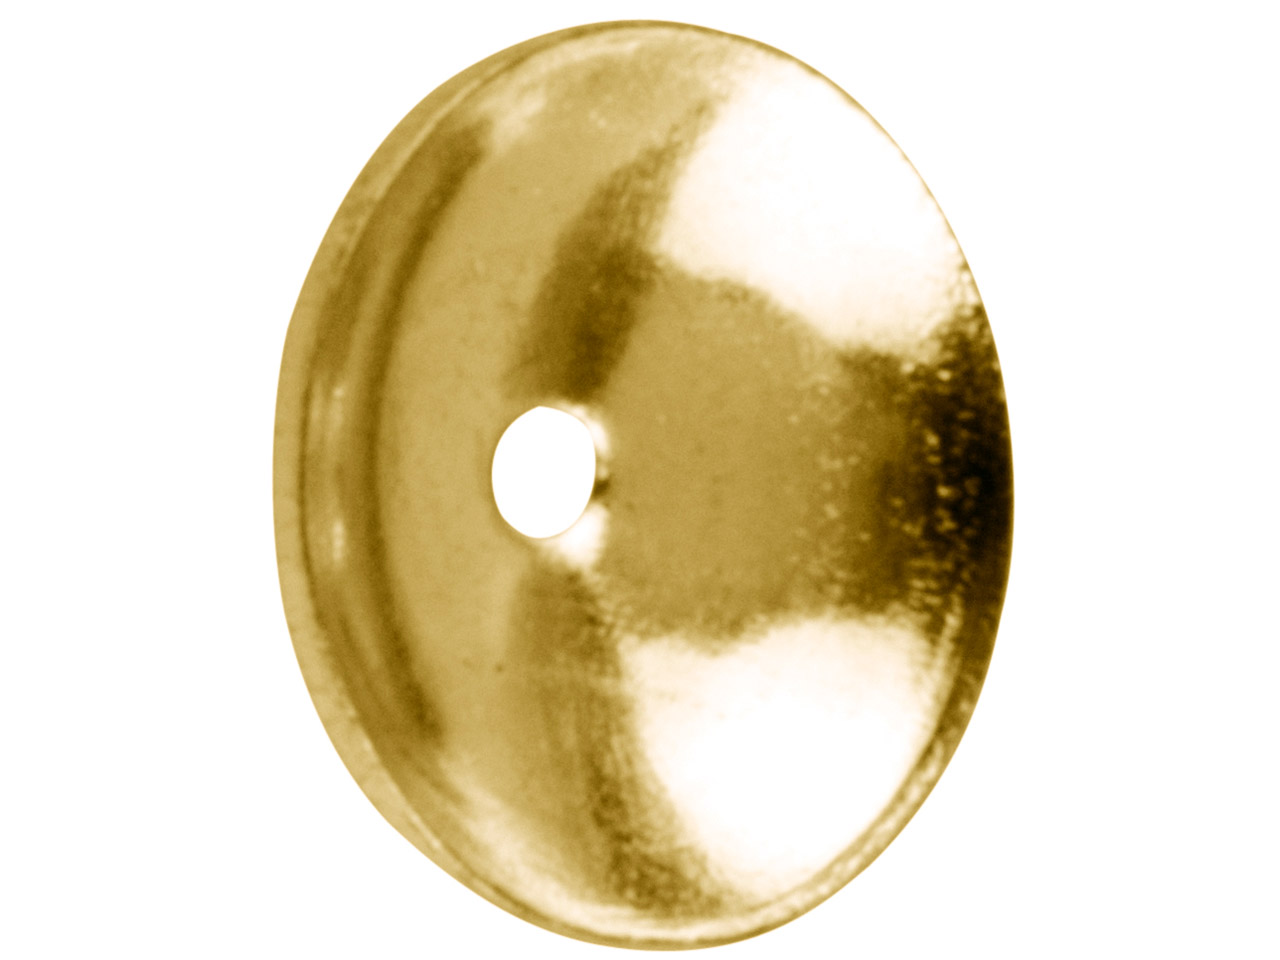 Gold Plated Plain Bead Cap 6mm     Pack of 25